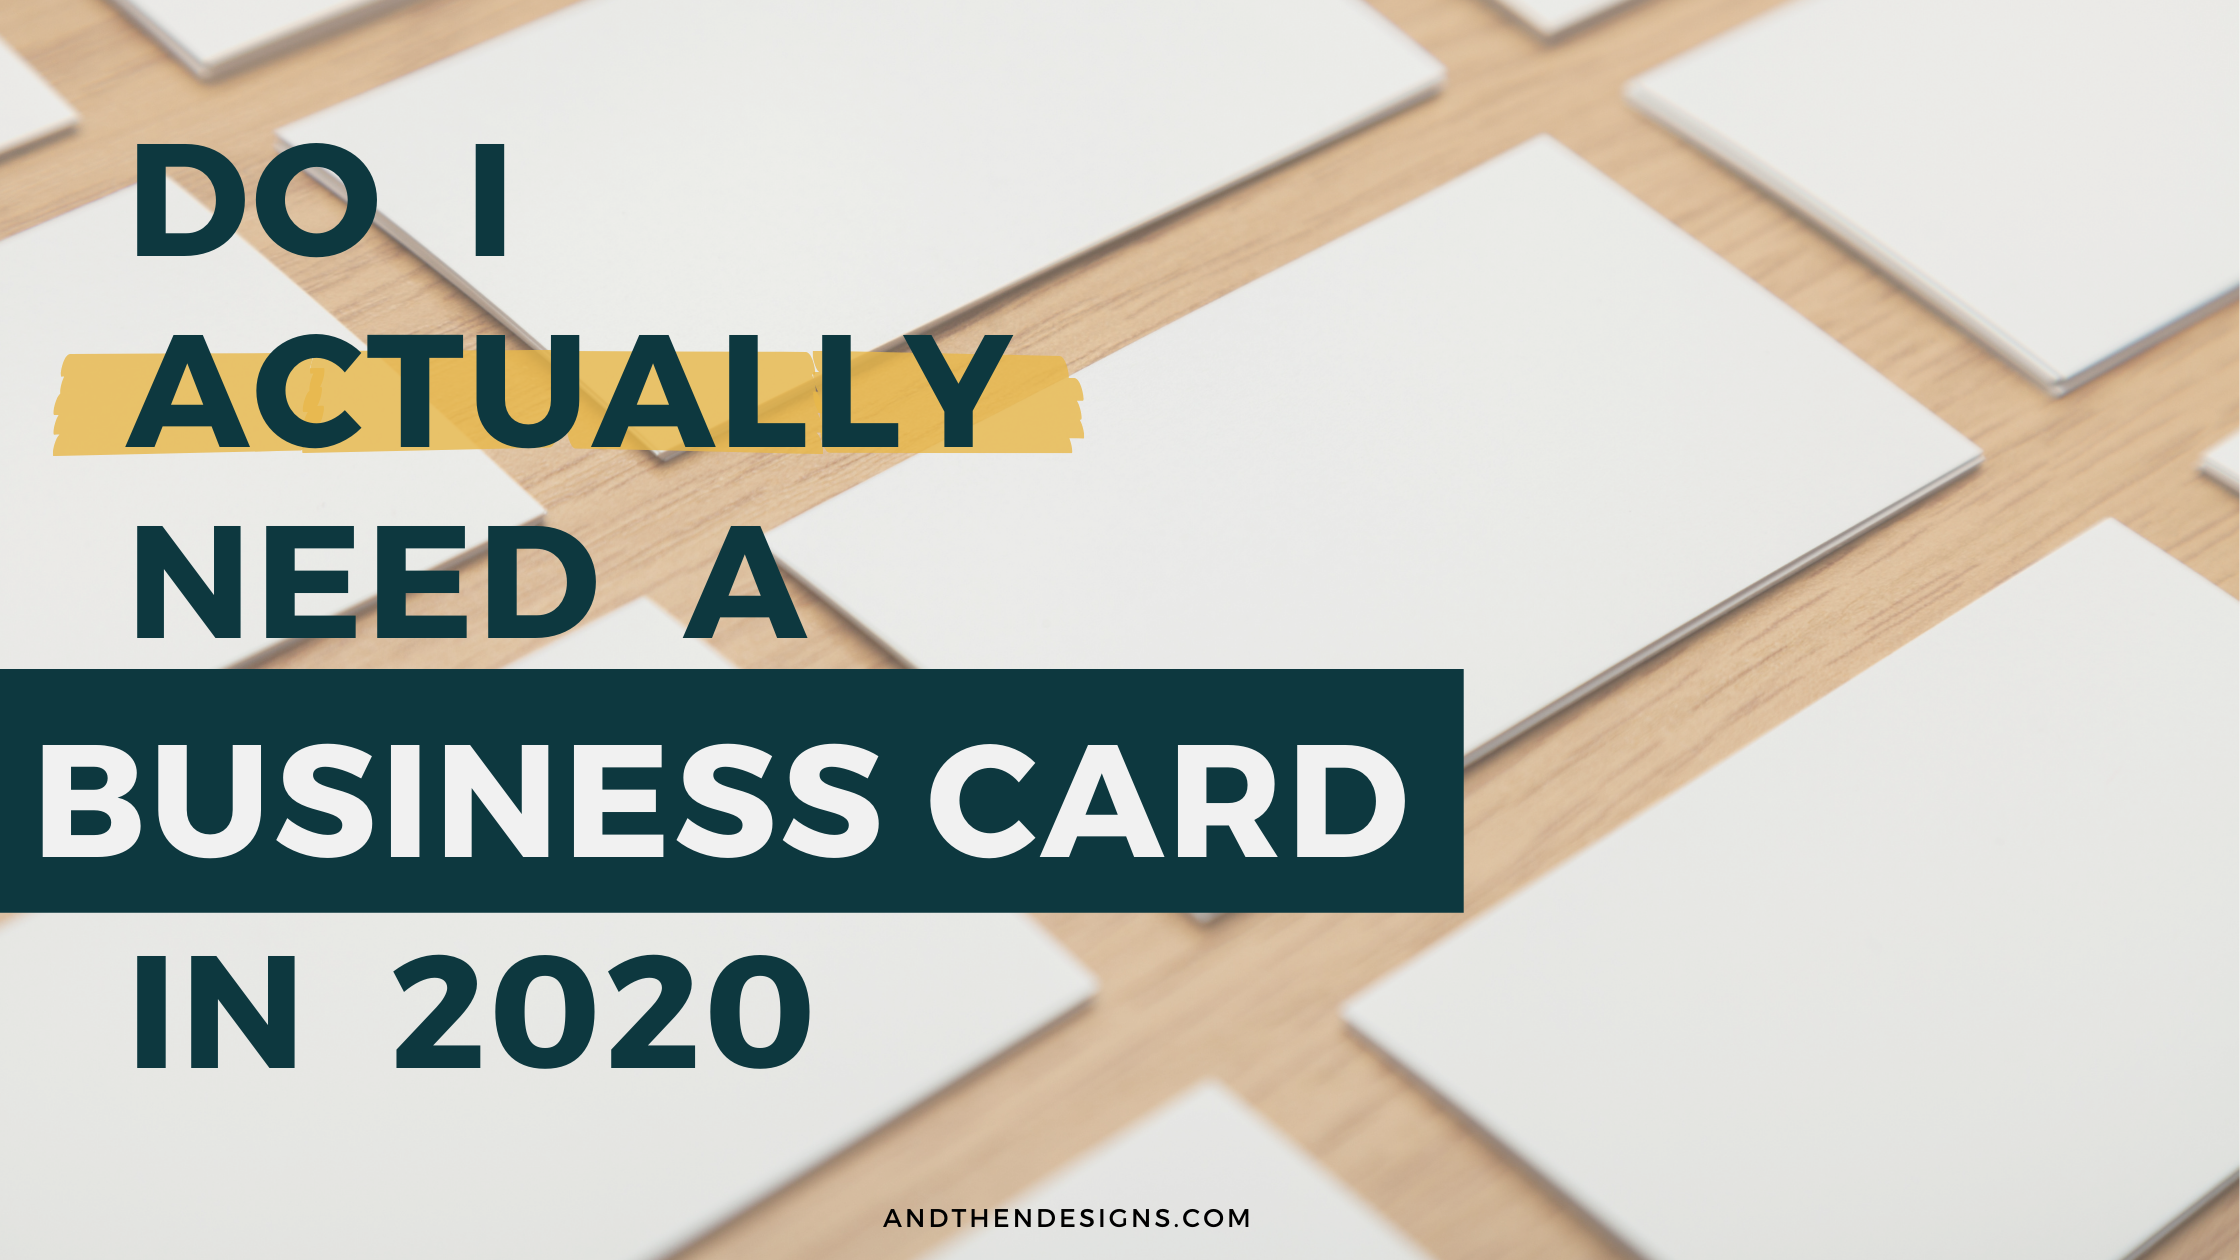 Do I Actually Need a Business Card in 2020? (Plus How to Get Noticed)